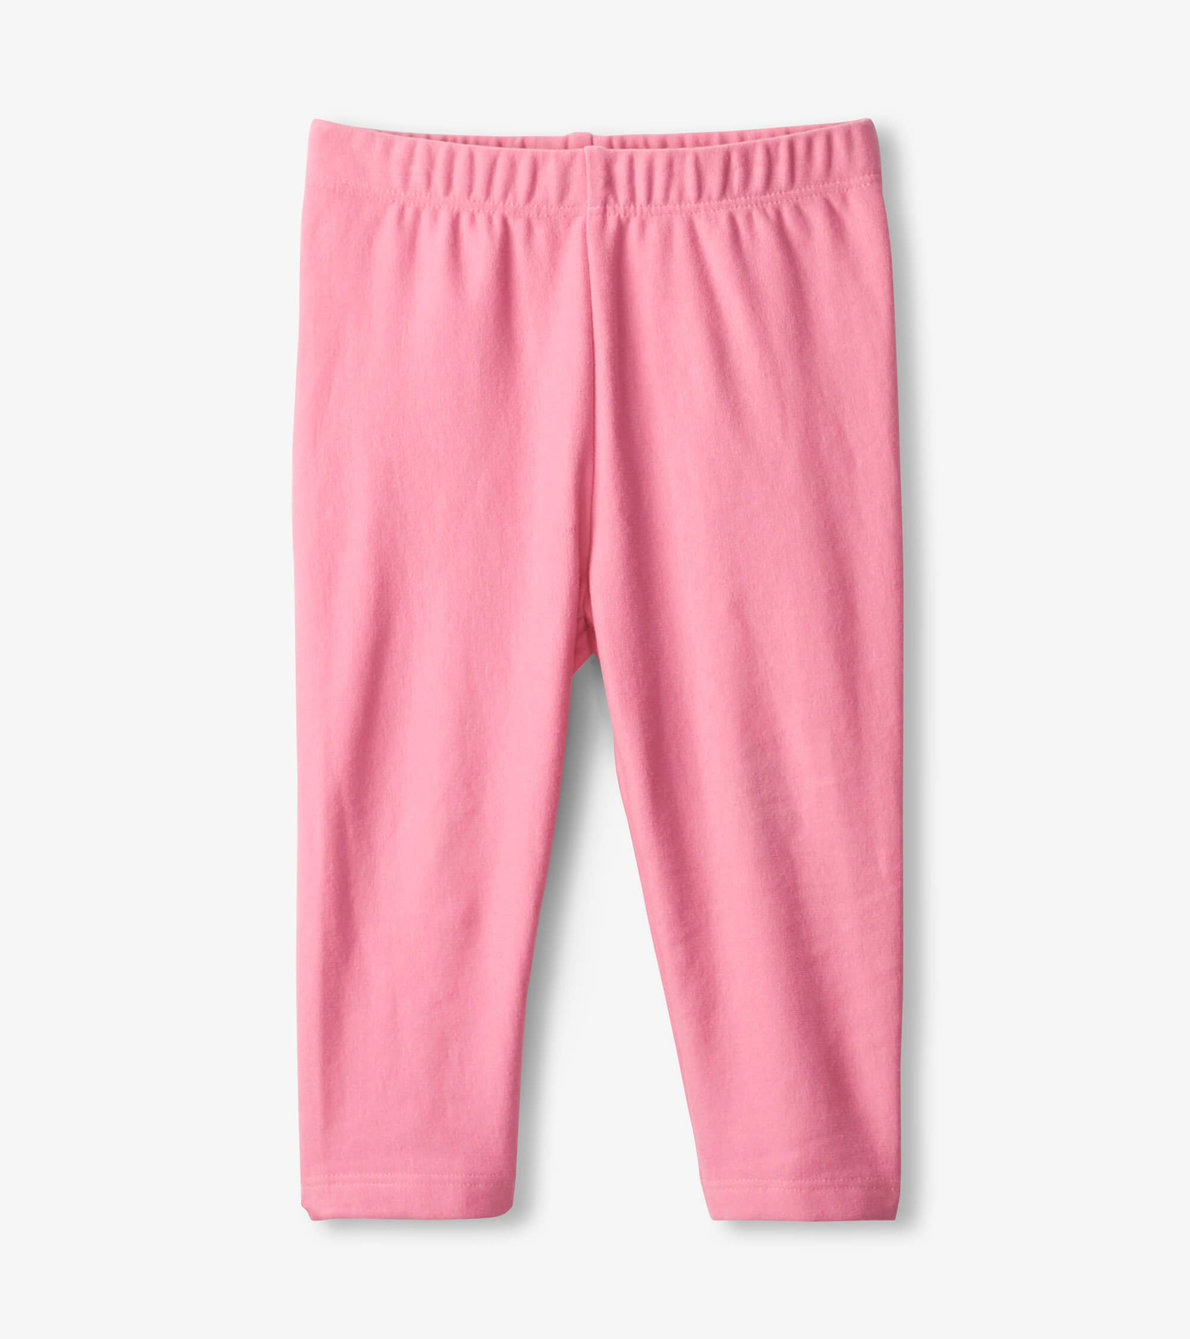 View larger image of Pink Cozy Baby Leggings